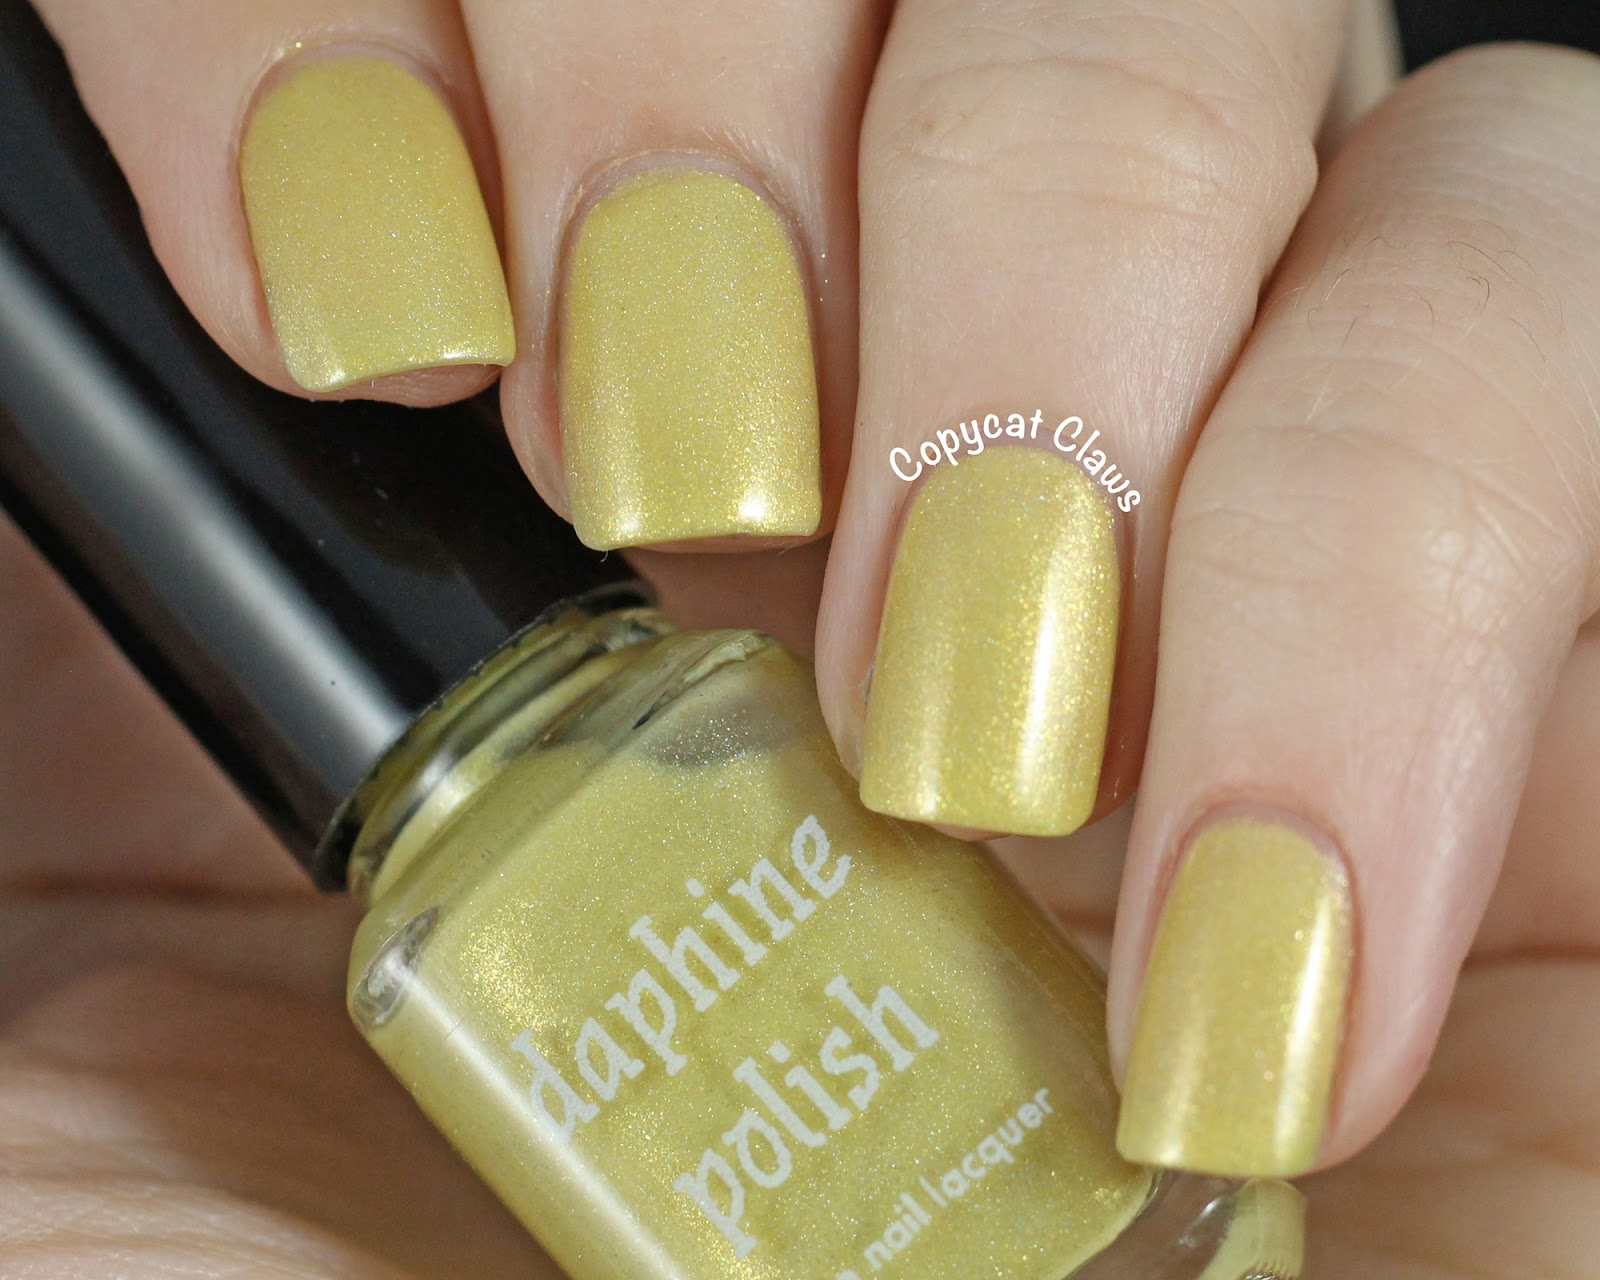 Copycat Claws: Daphine Polish His Dark Materials Collection